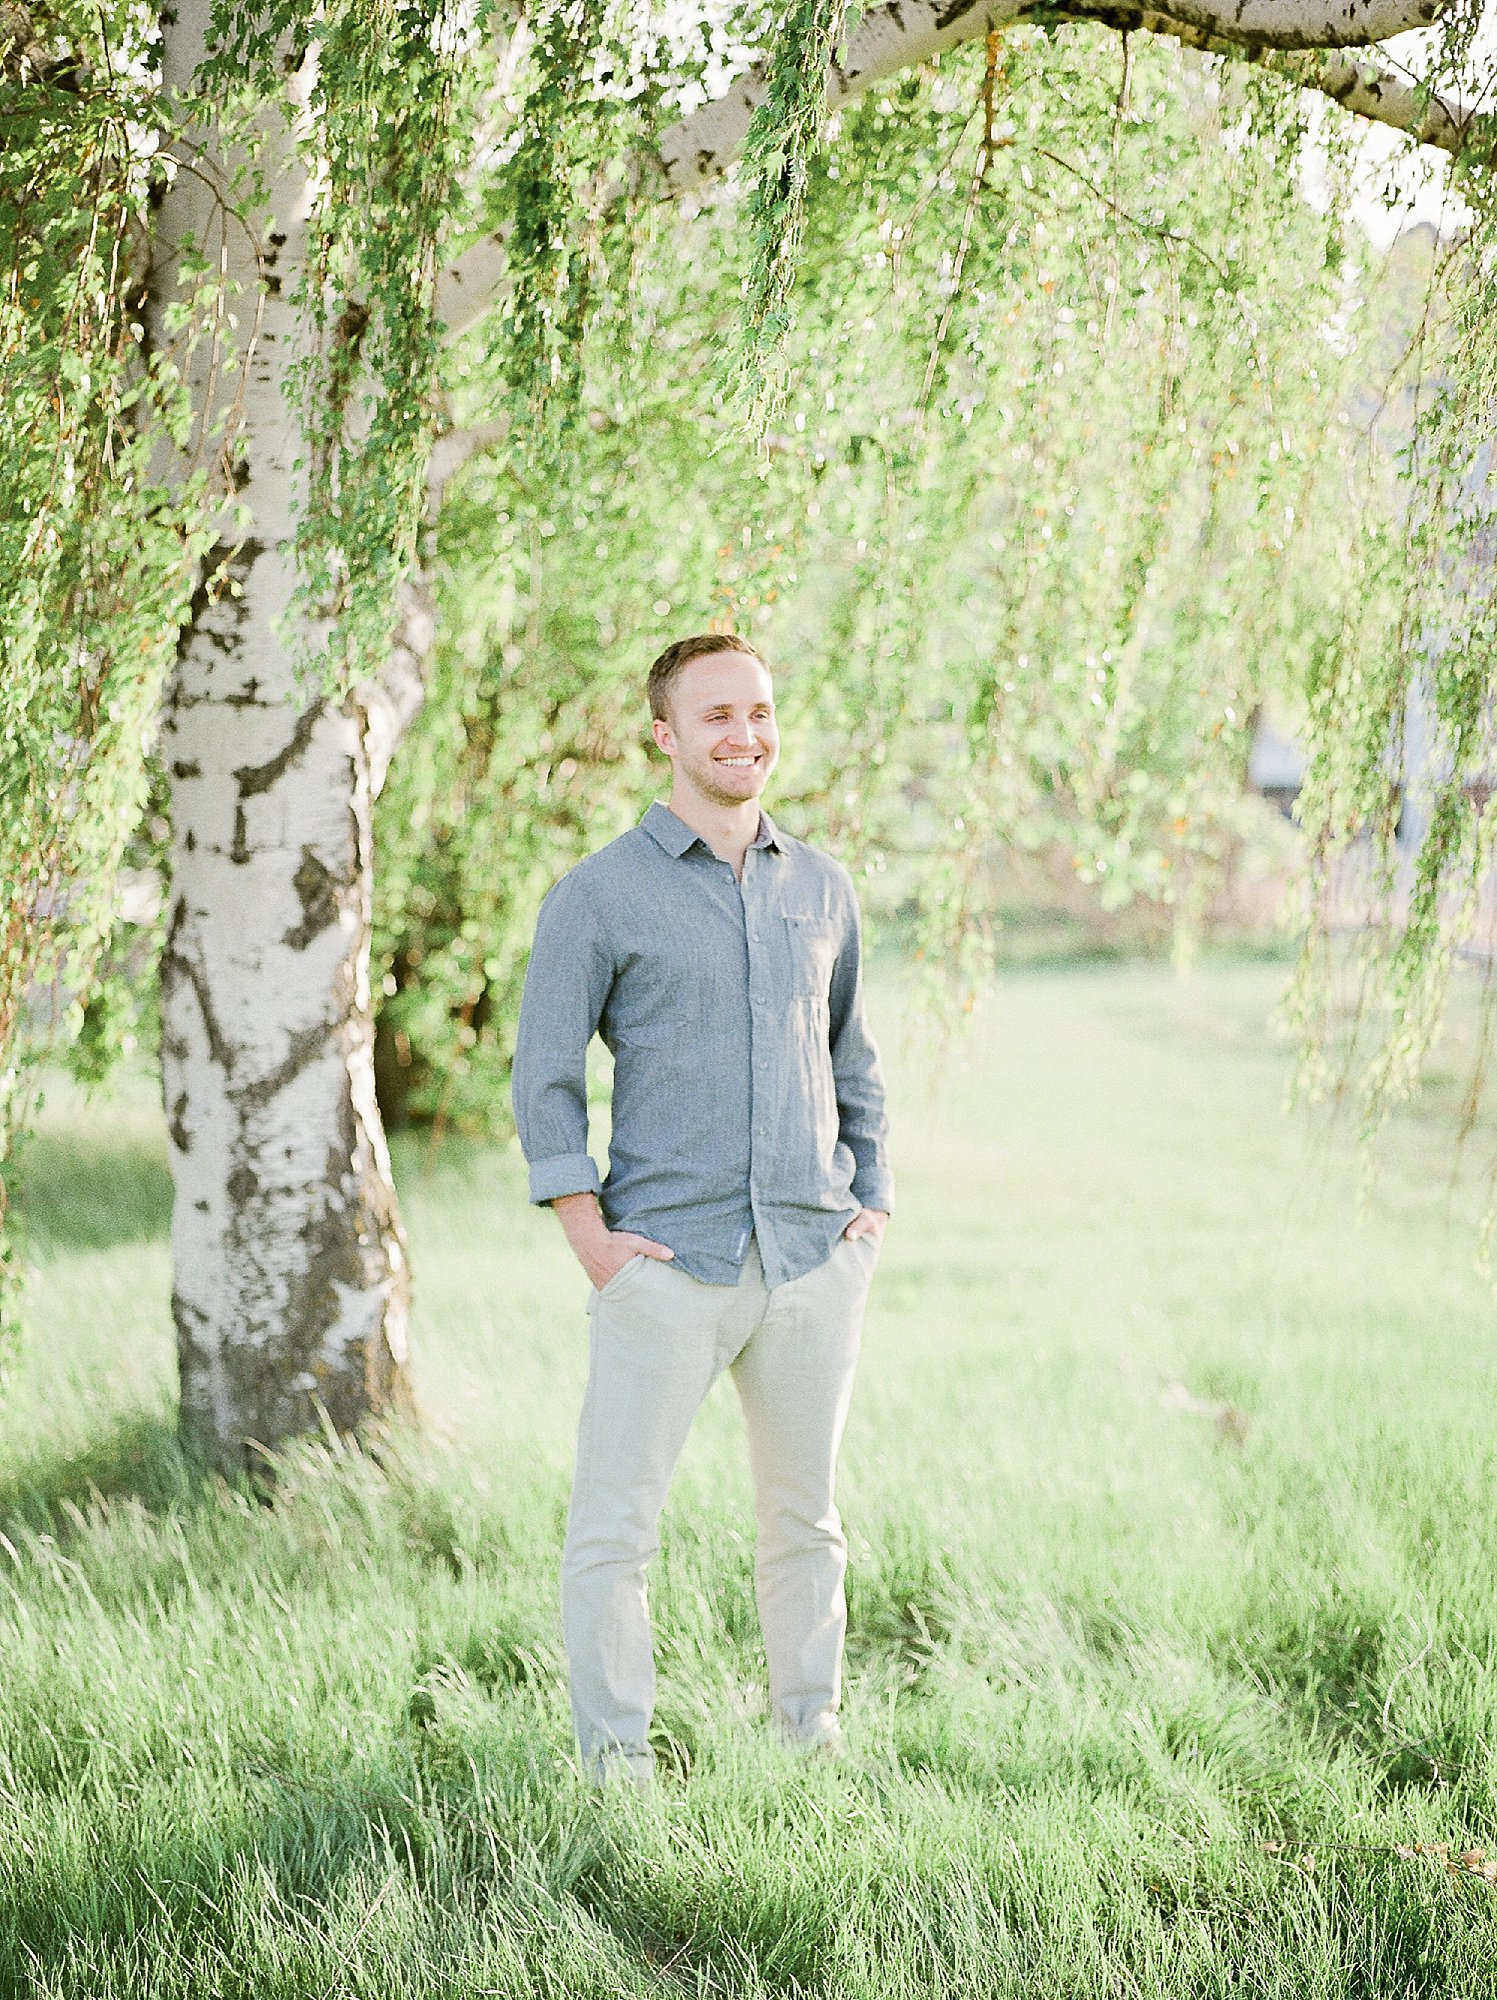 canadian groom, canadian wedding photographer, wedding guest outfit ideas for men